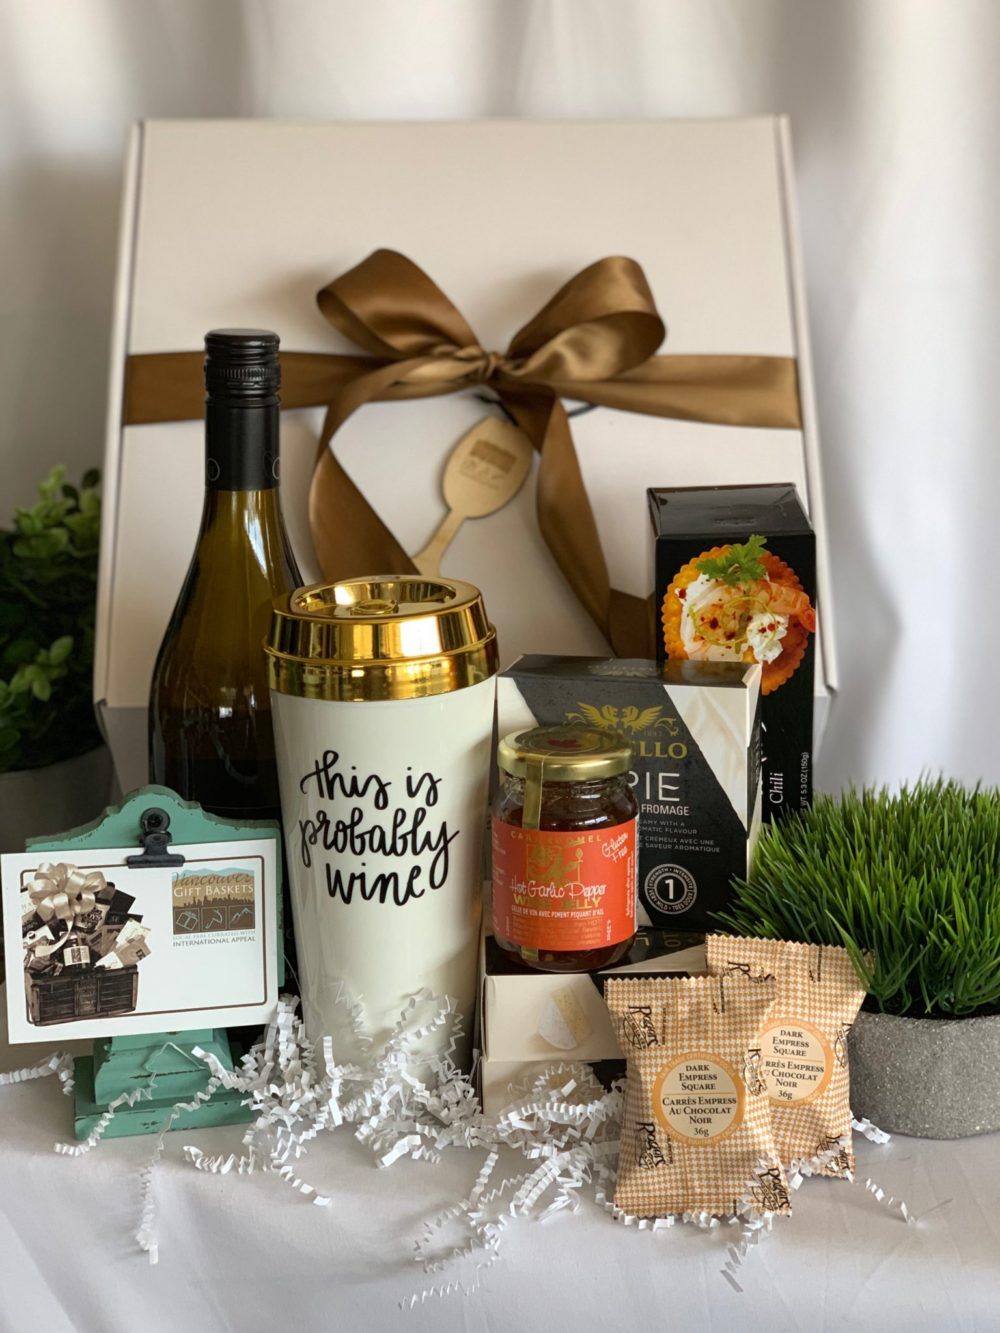 Probably Wine in Here Gift Box - Vancouver Gift Baskets